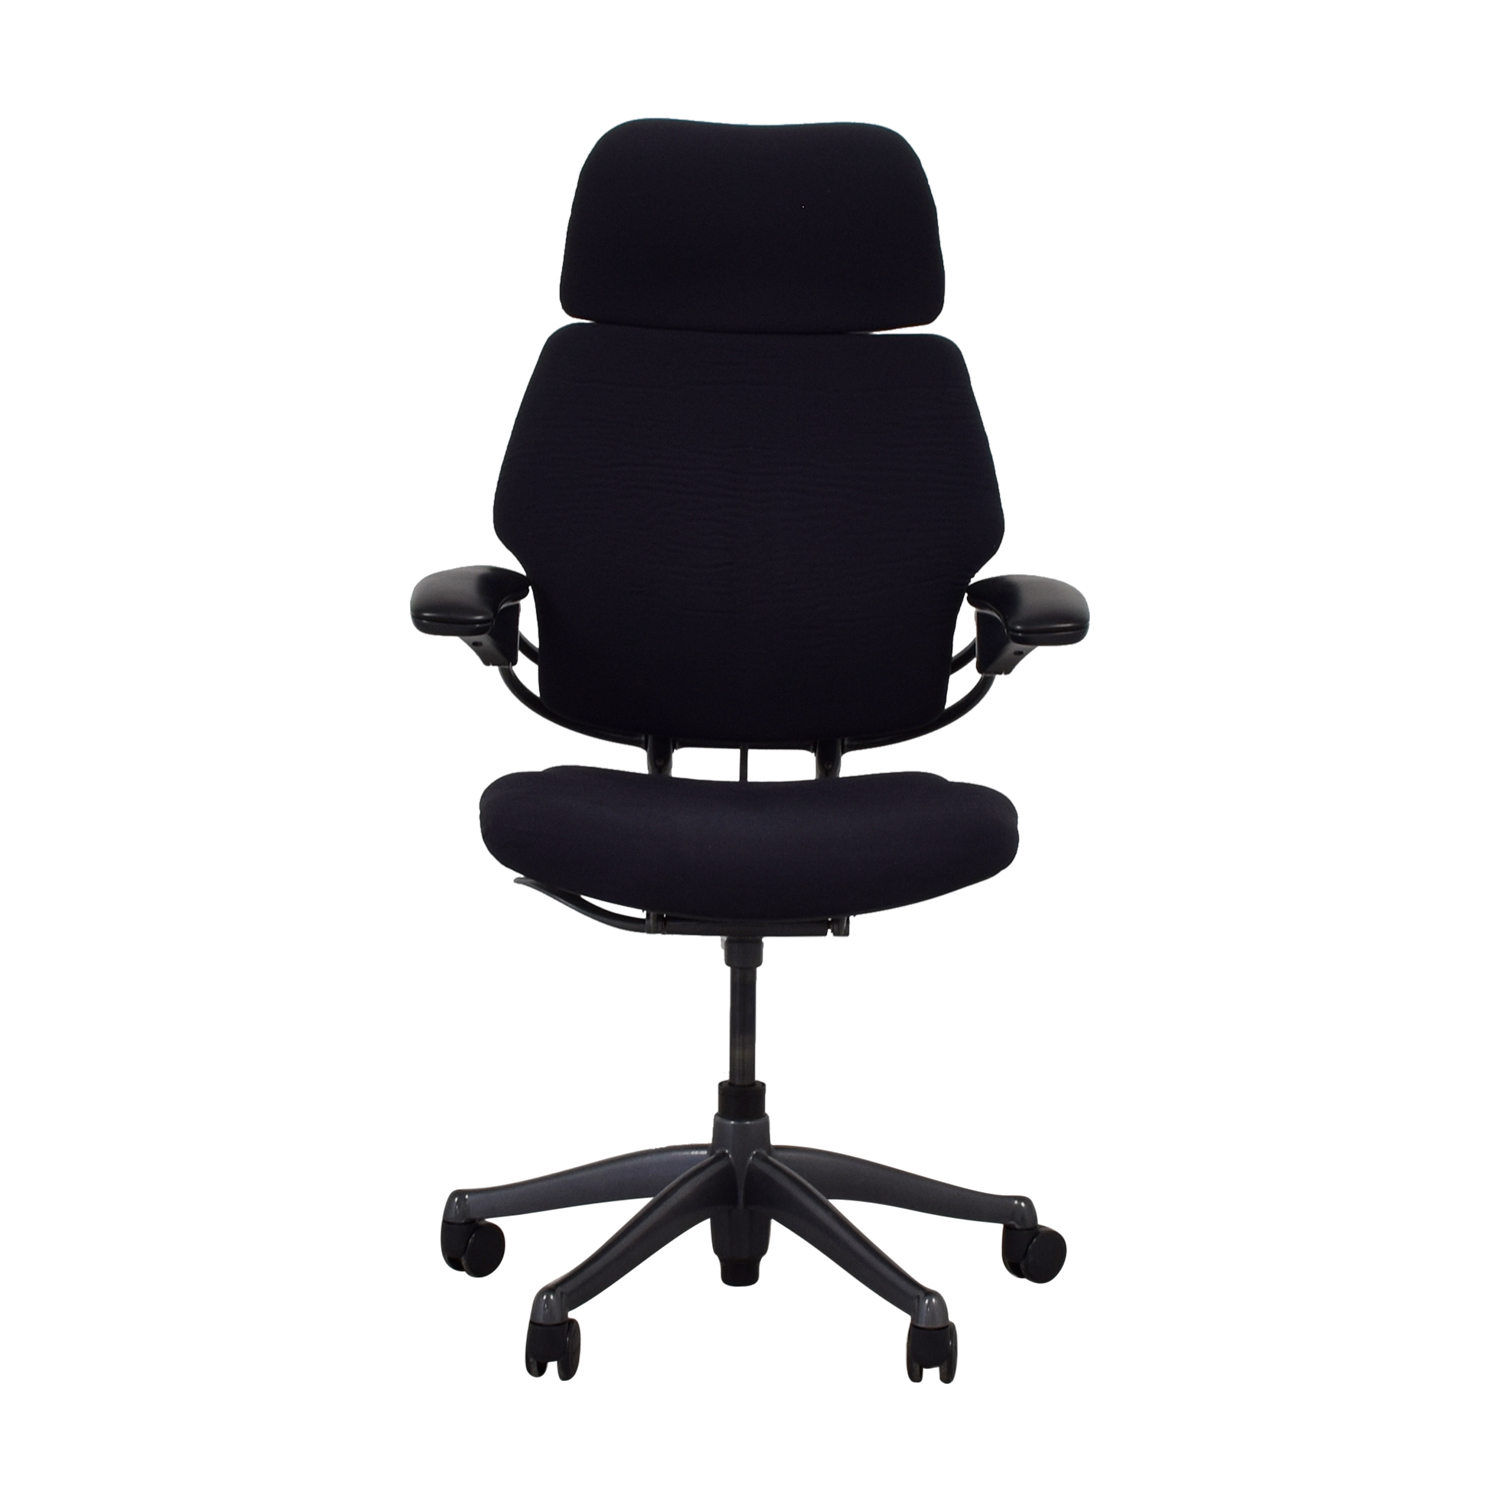 Freedom Furniture Head Office 63 Off Humanscale Humanscale Freedom Chair With Headrest Chairs